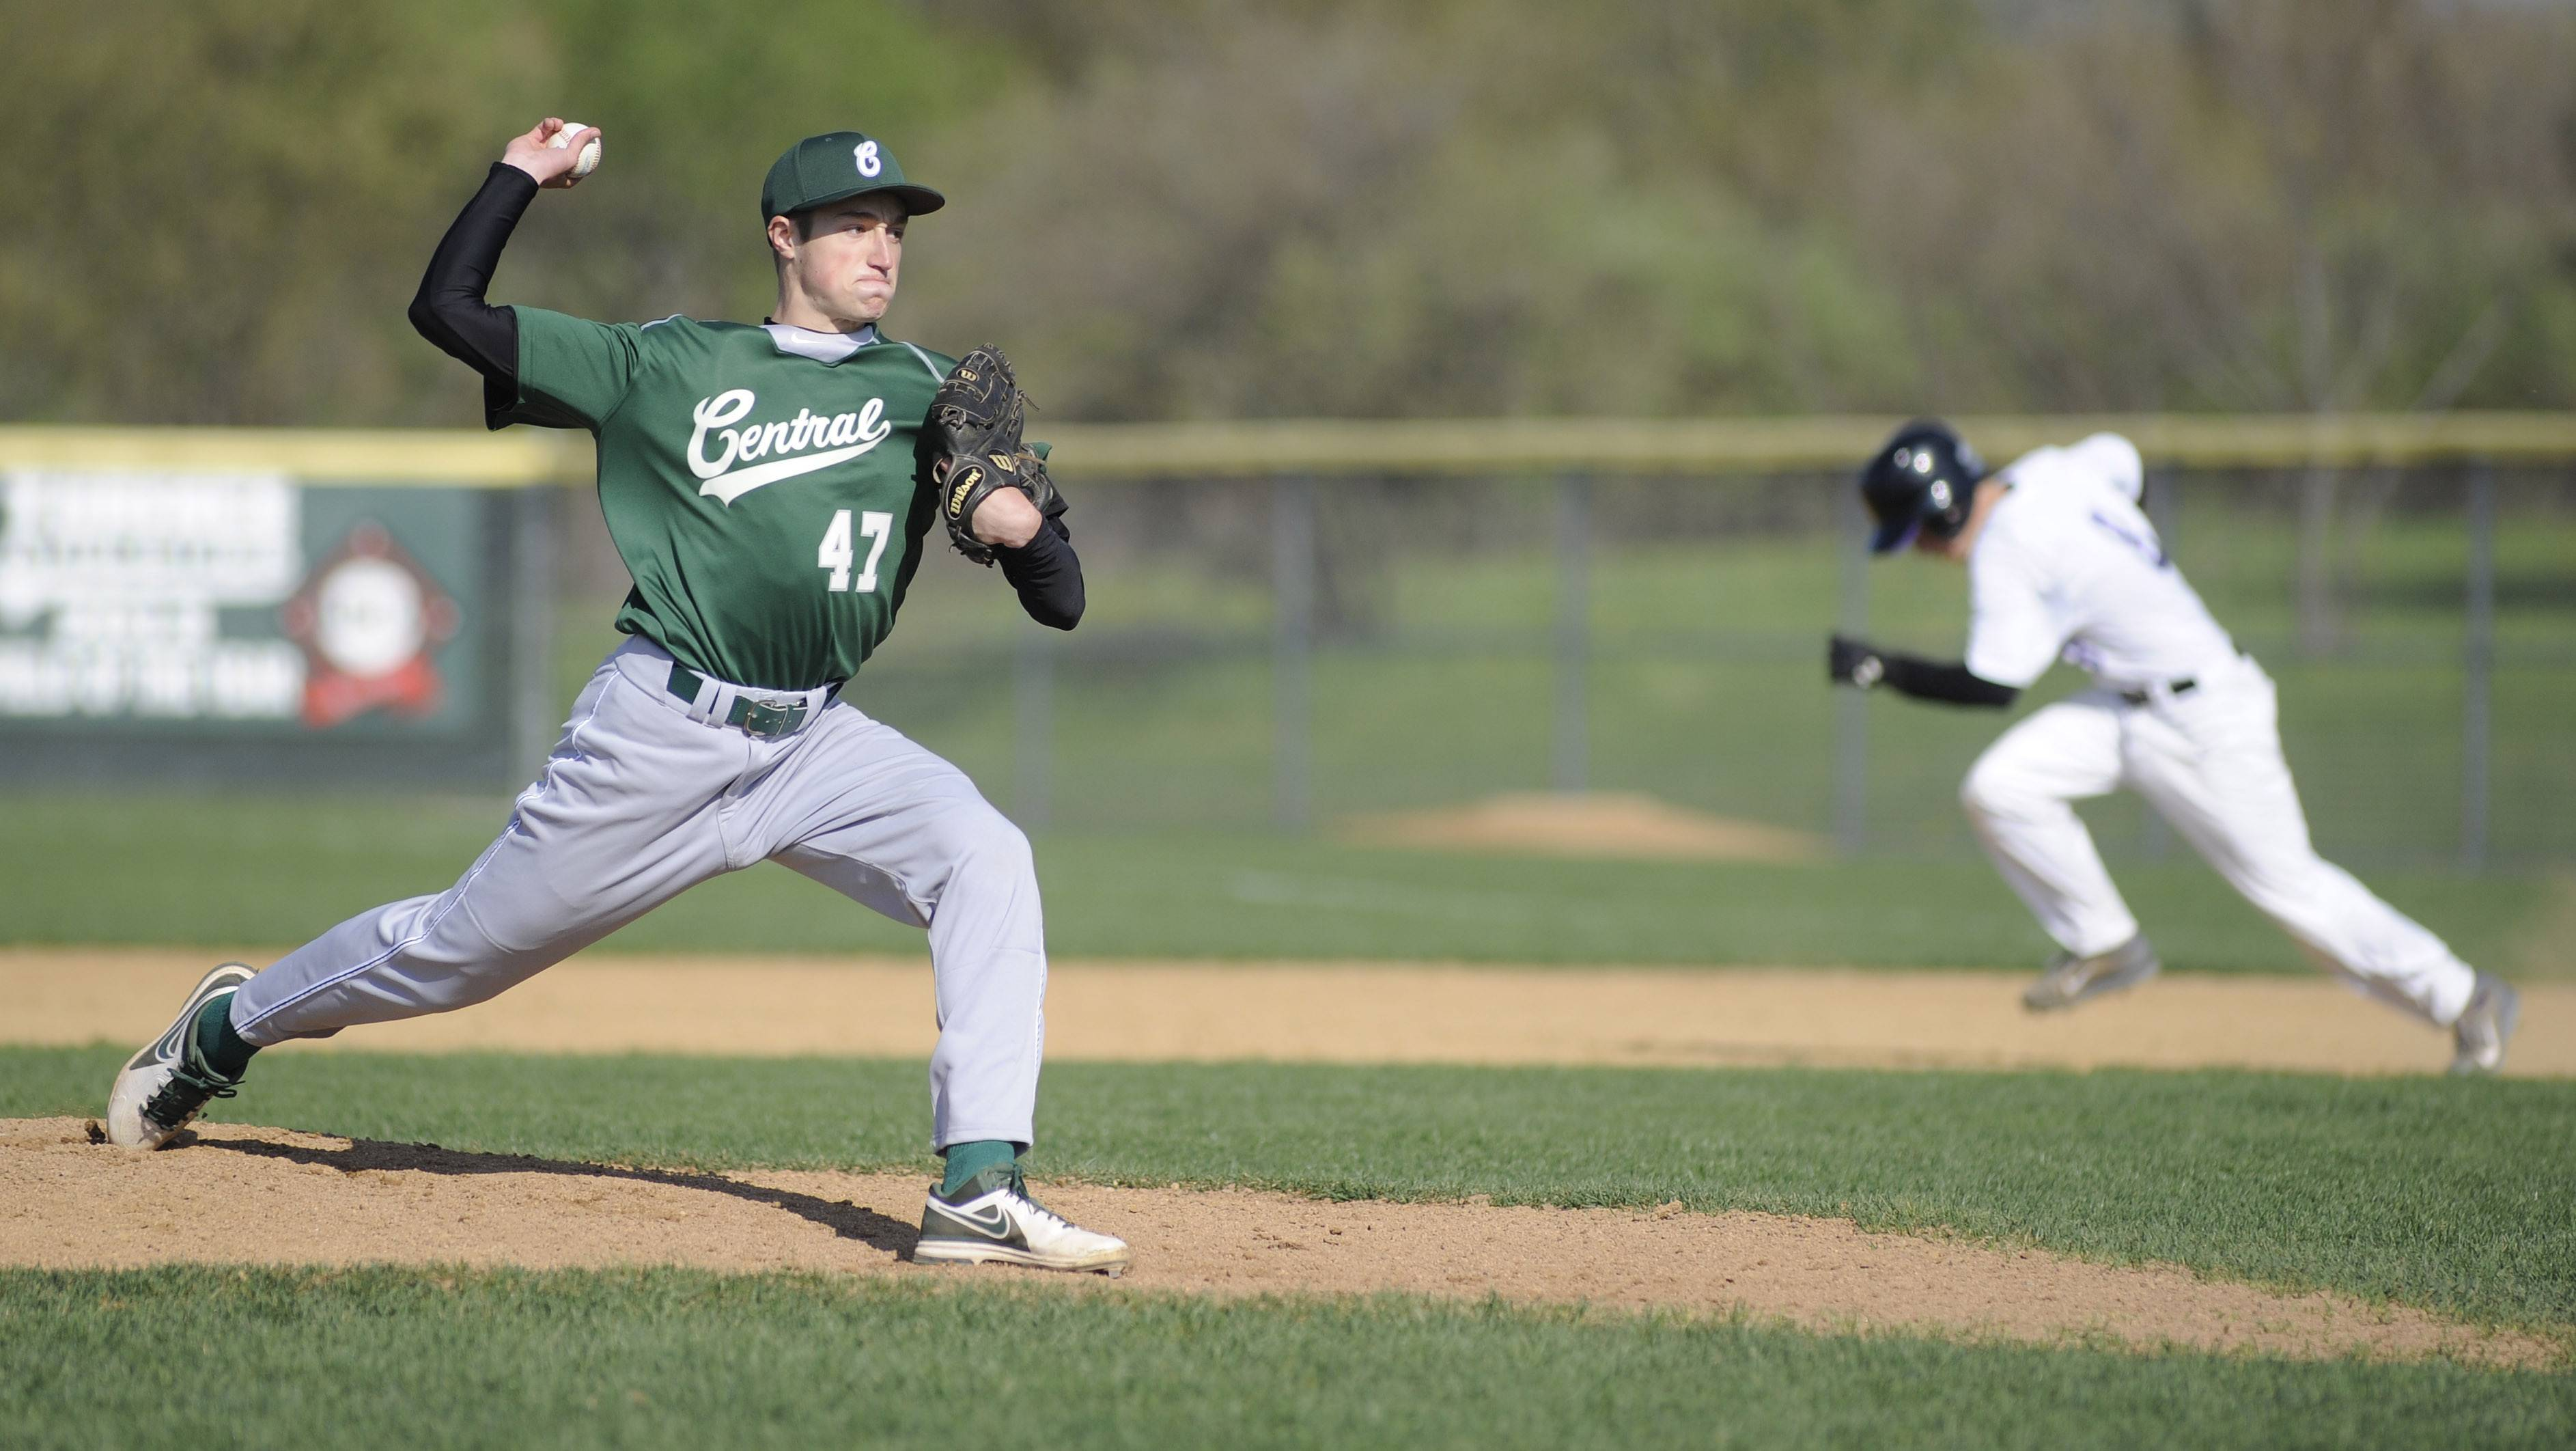 Grayslake Central's Russel Lundius pitches as Hampshire's Michael Merchut sprints for second base in the first inning at Hampshire Friday.